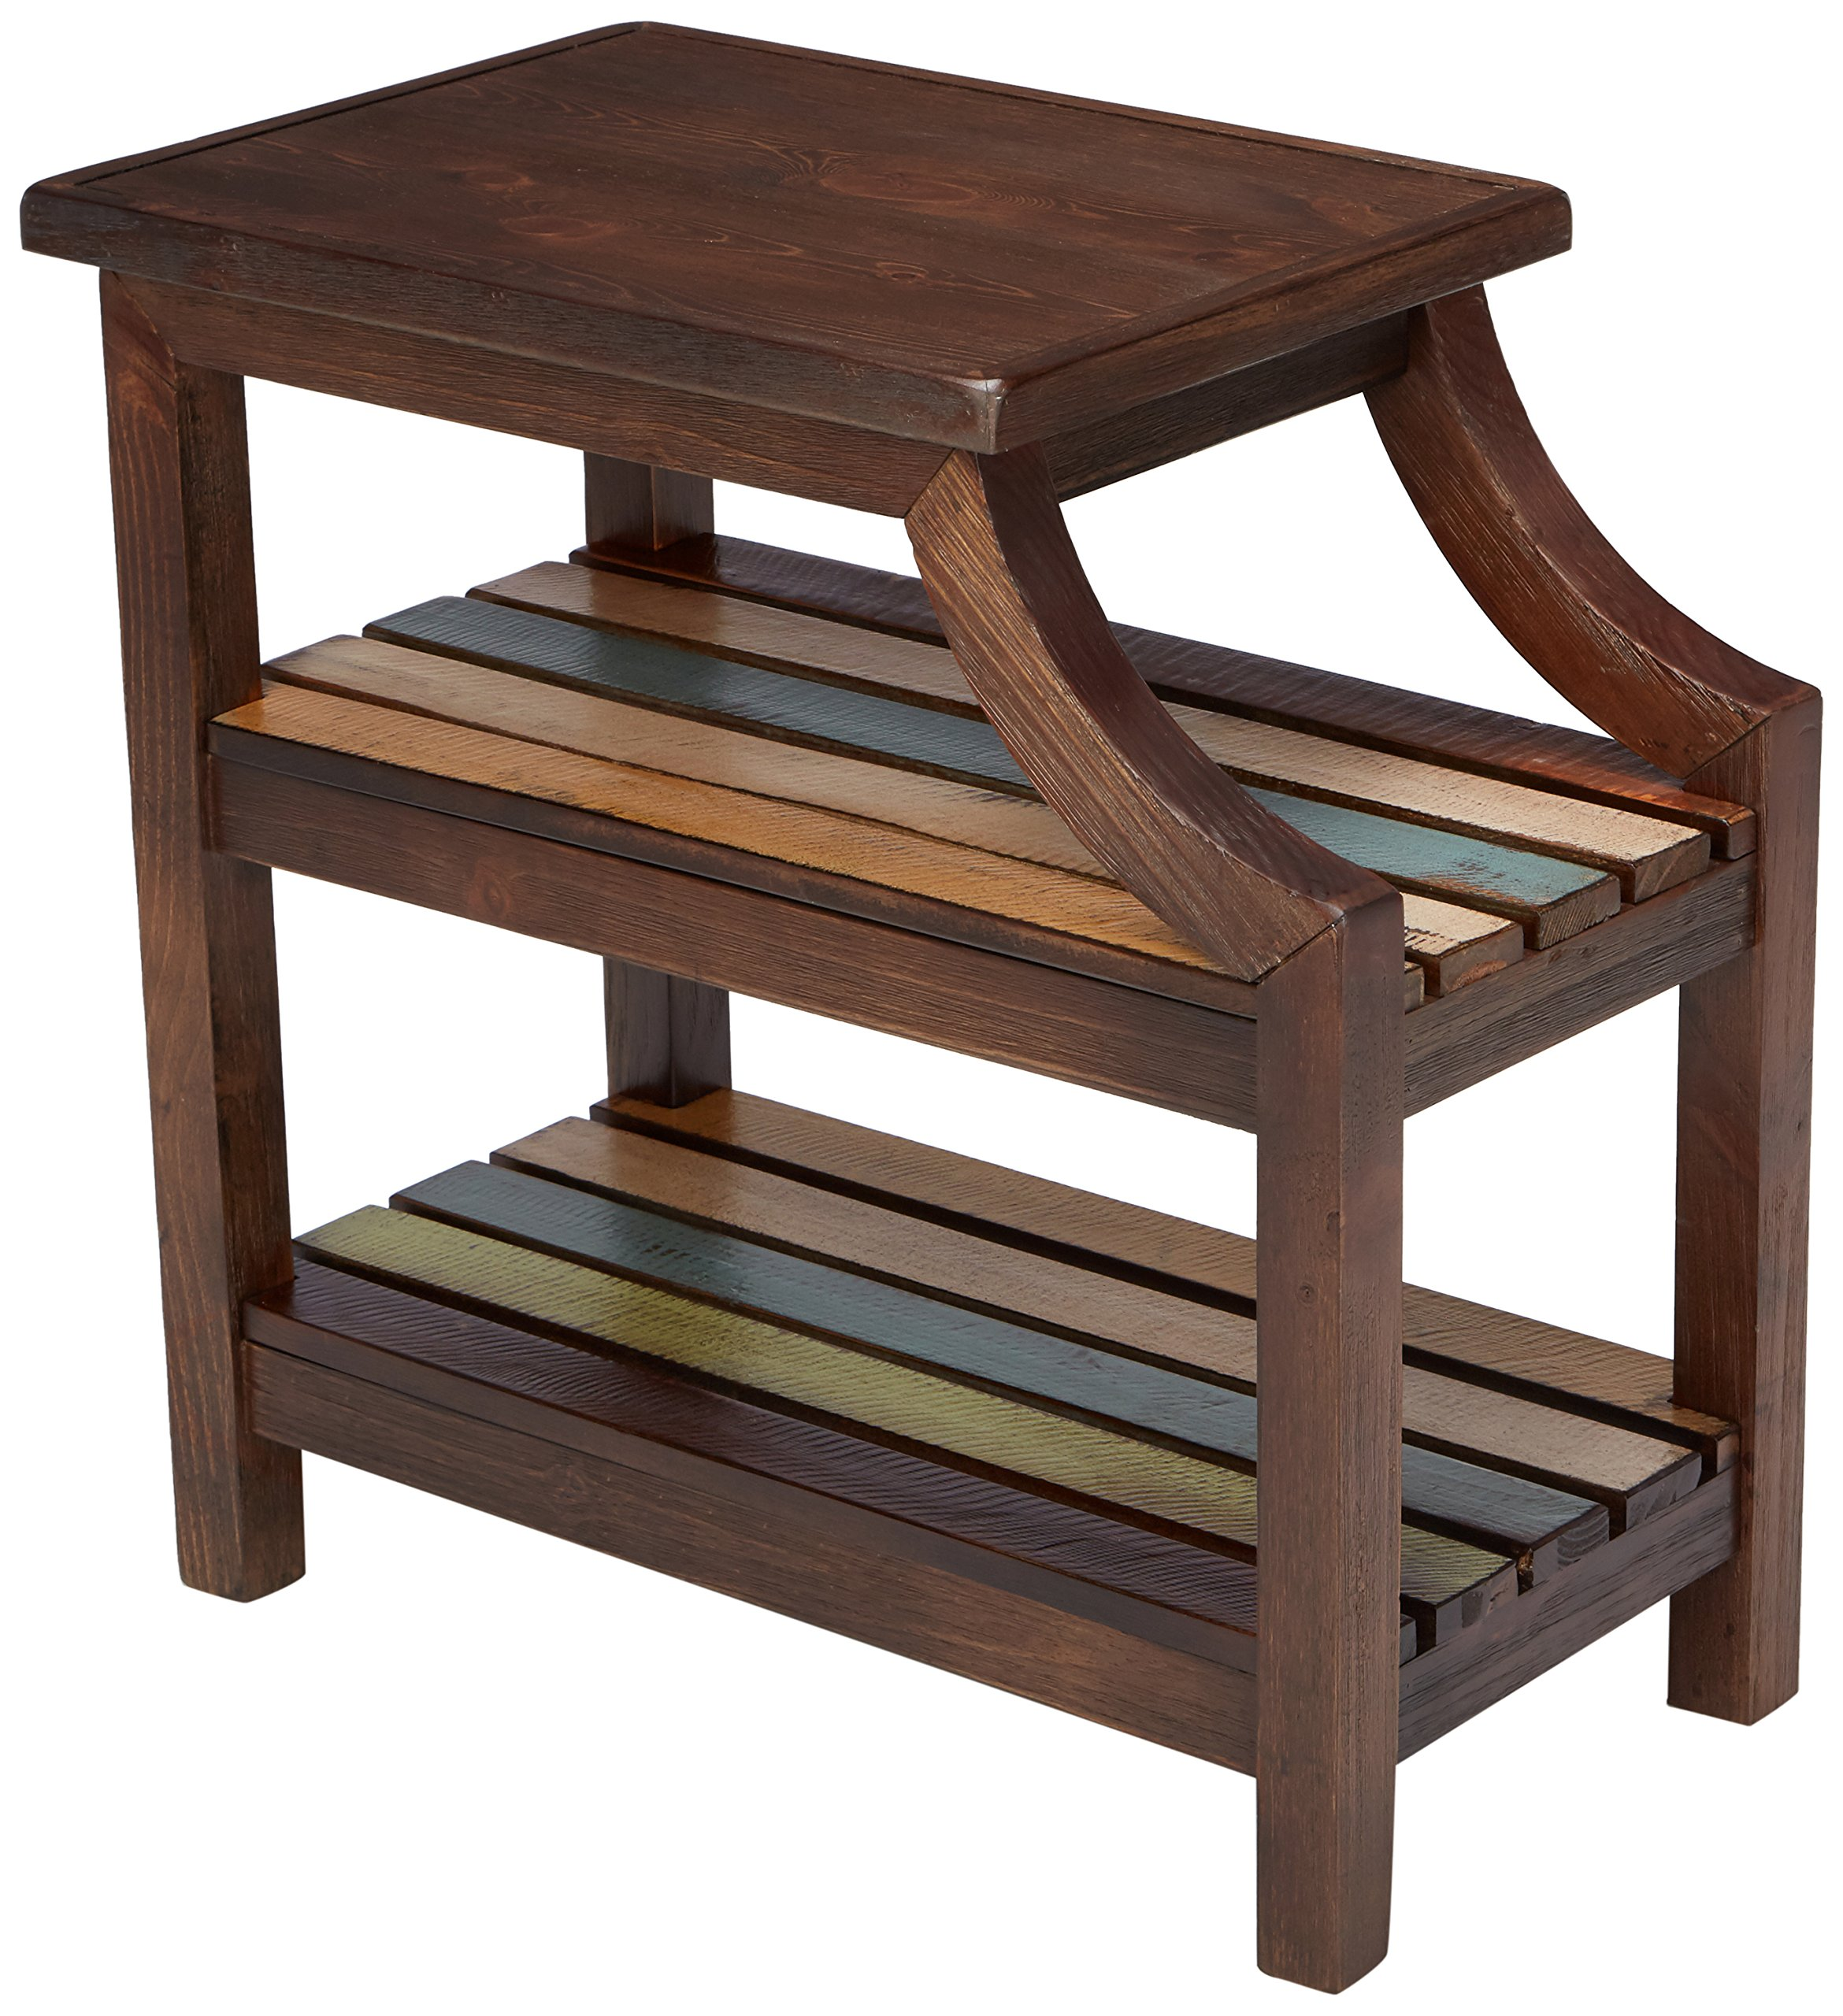 Ashley Furniture Signature Design - Mestler Casual Chair Side End Table - 2 Slotted Multi-Color Shelves - Rustic Brown by Signature Design by Ashley